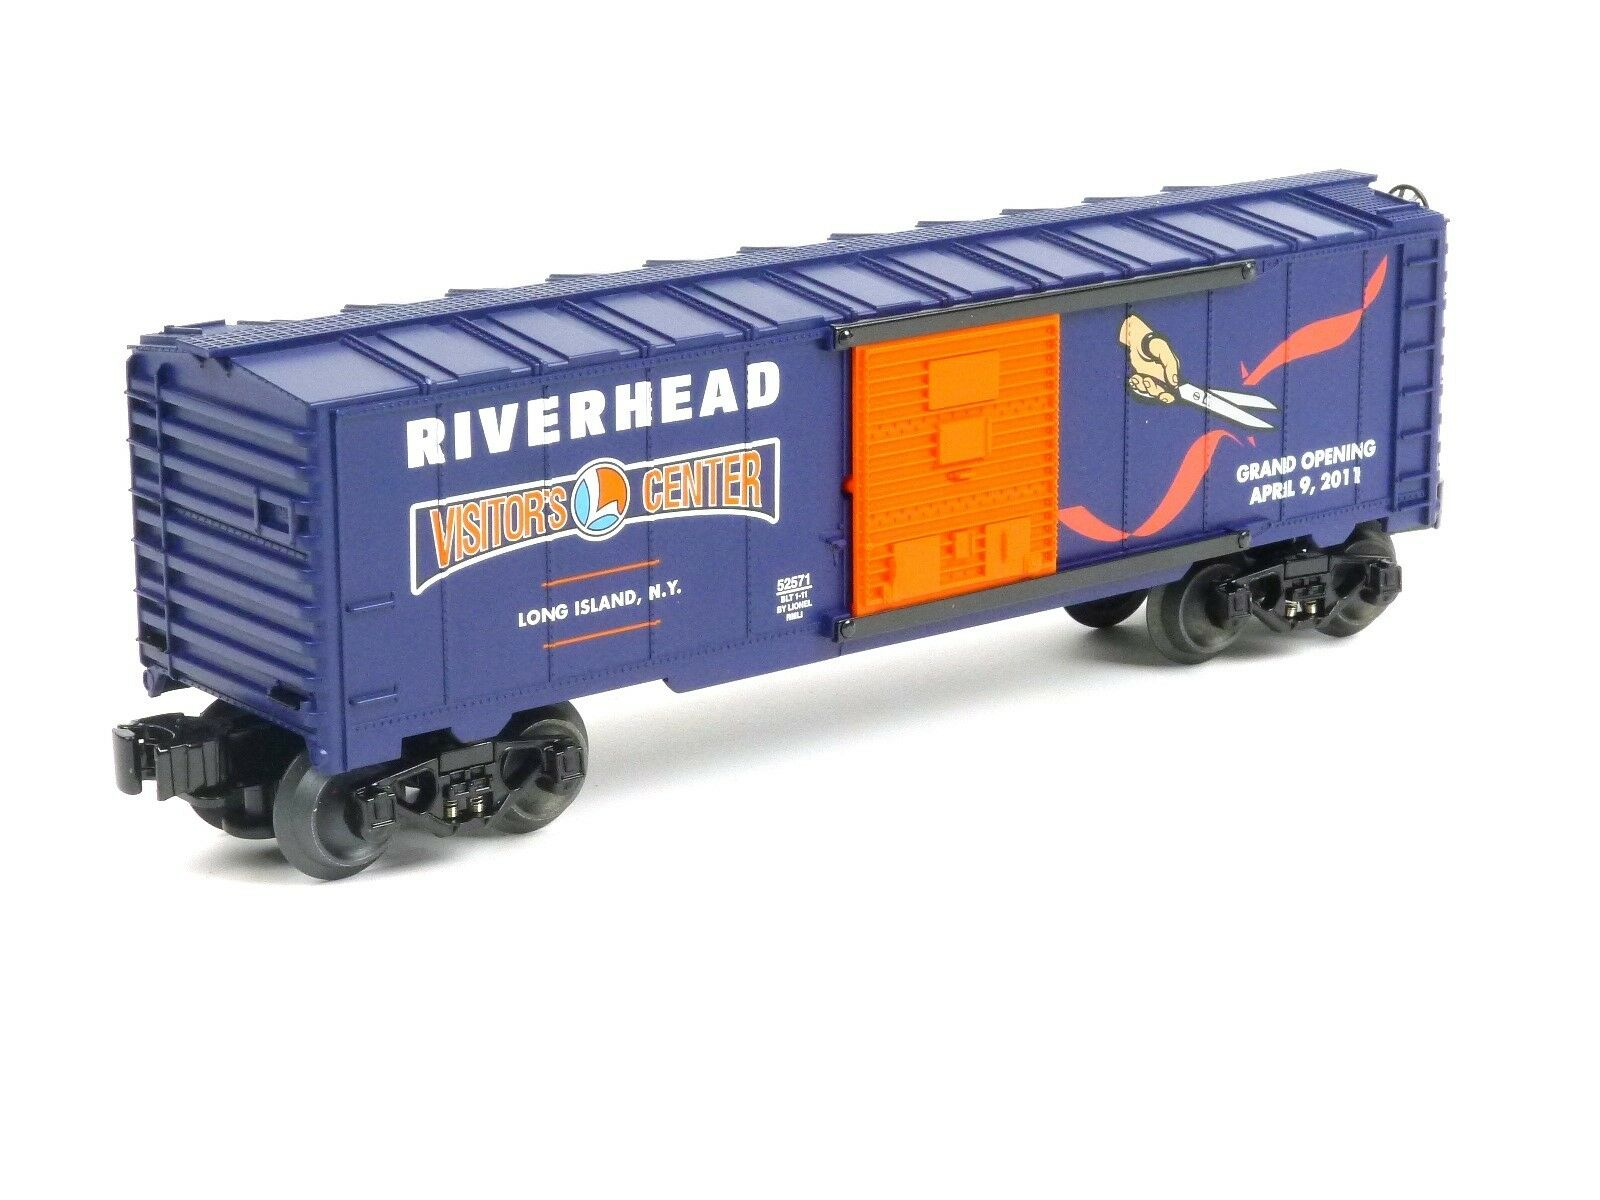 Lionel 6-52571 Riverhead Visitors Center Grand Opening Car O Scale Model Trains